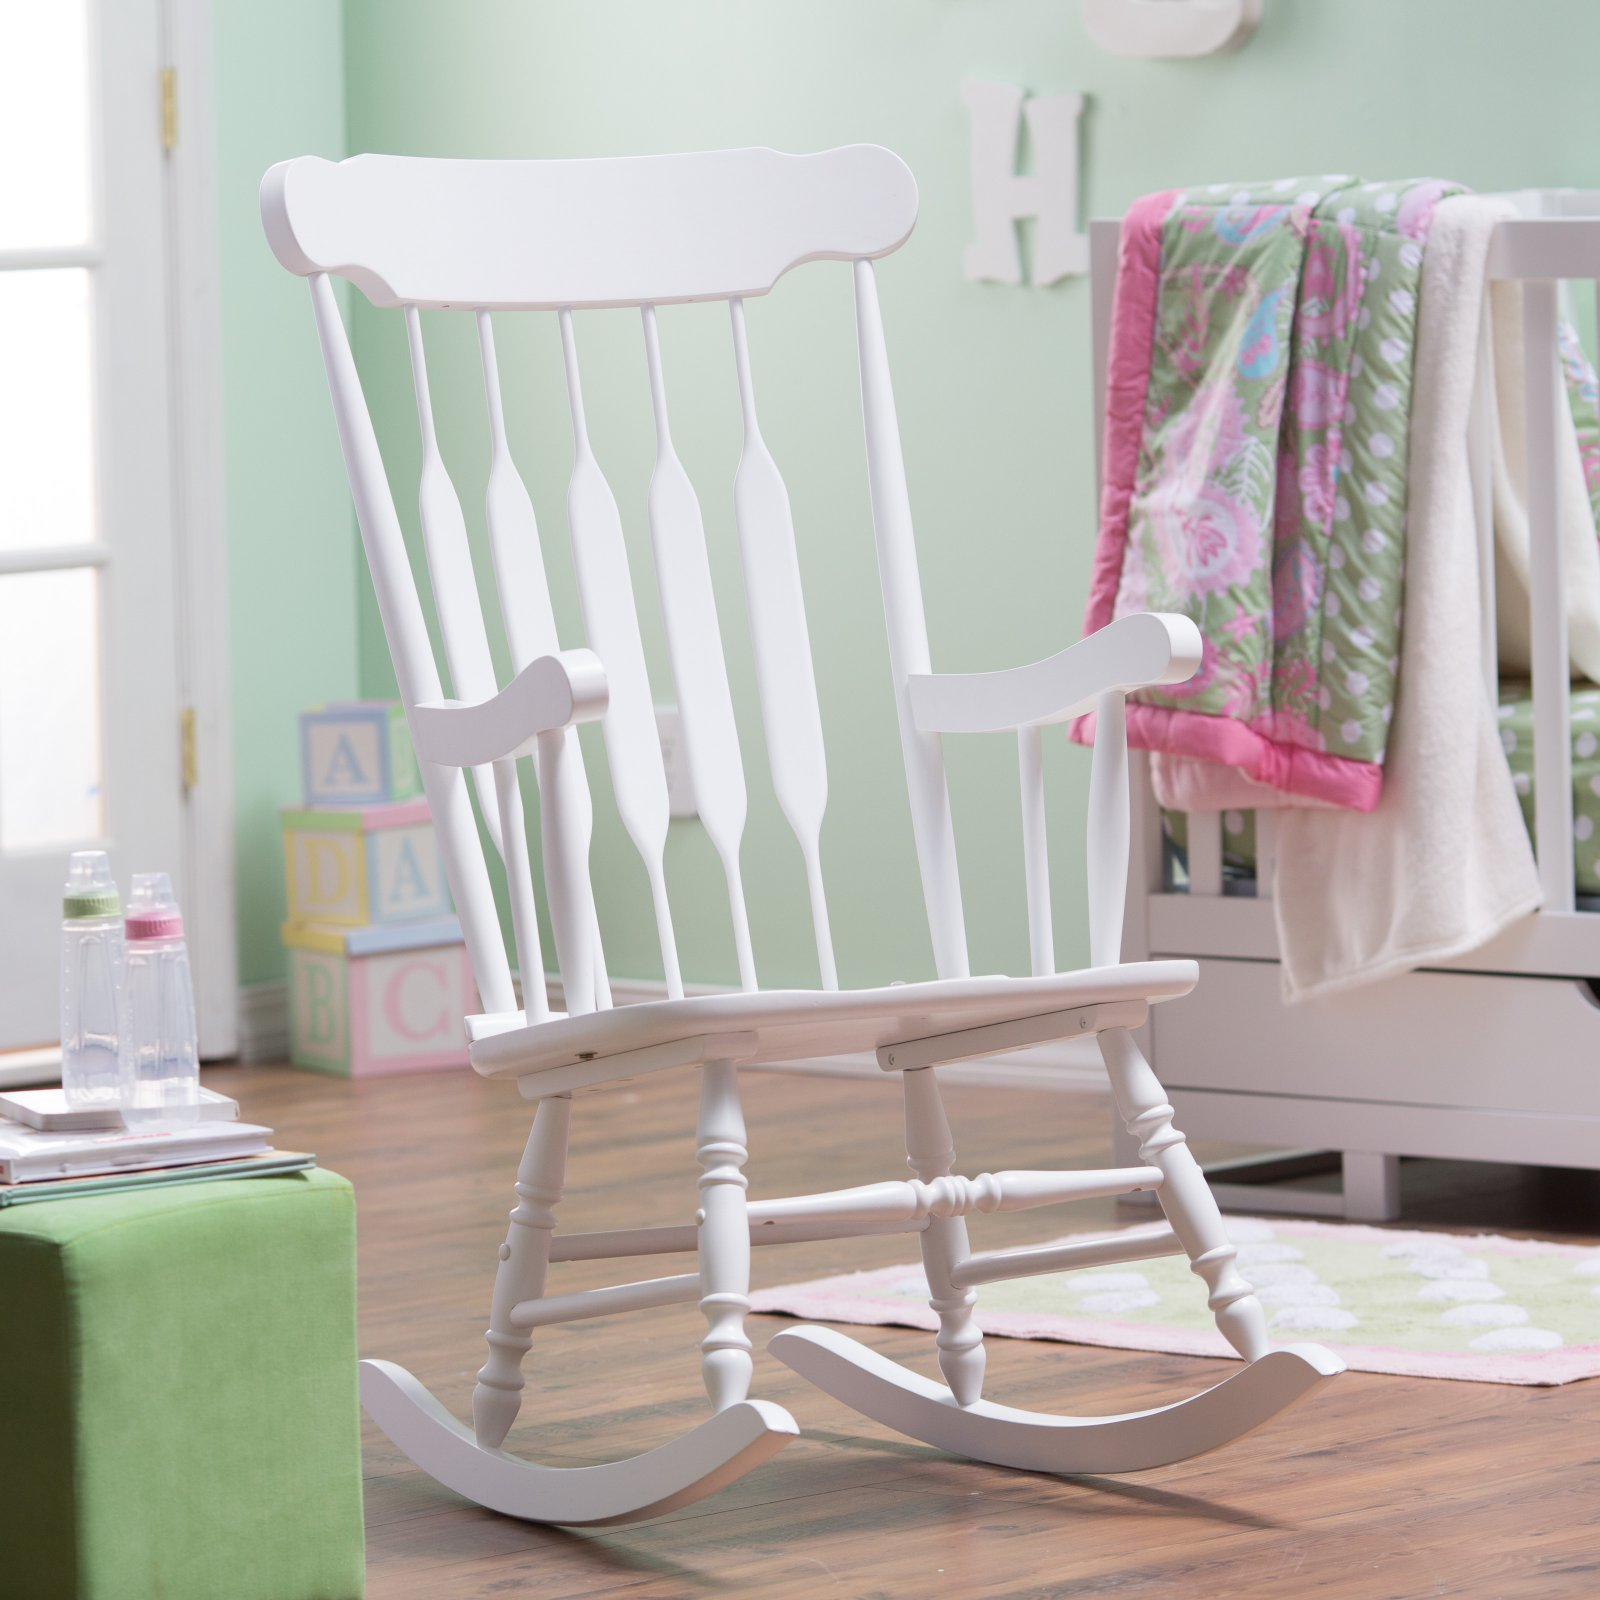 Belham Living Wood Nursery Rocker - White